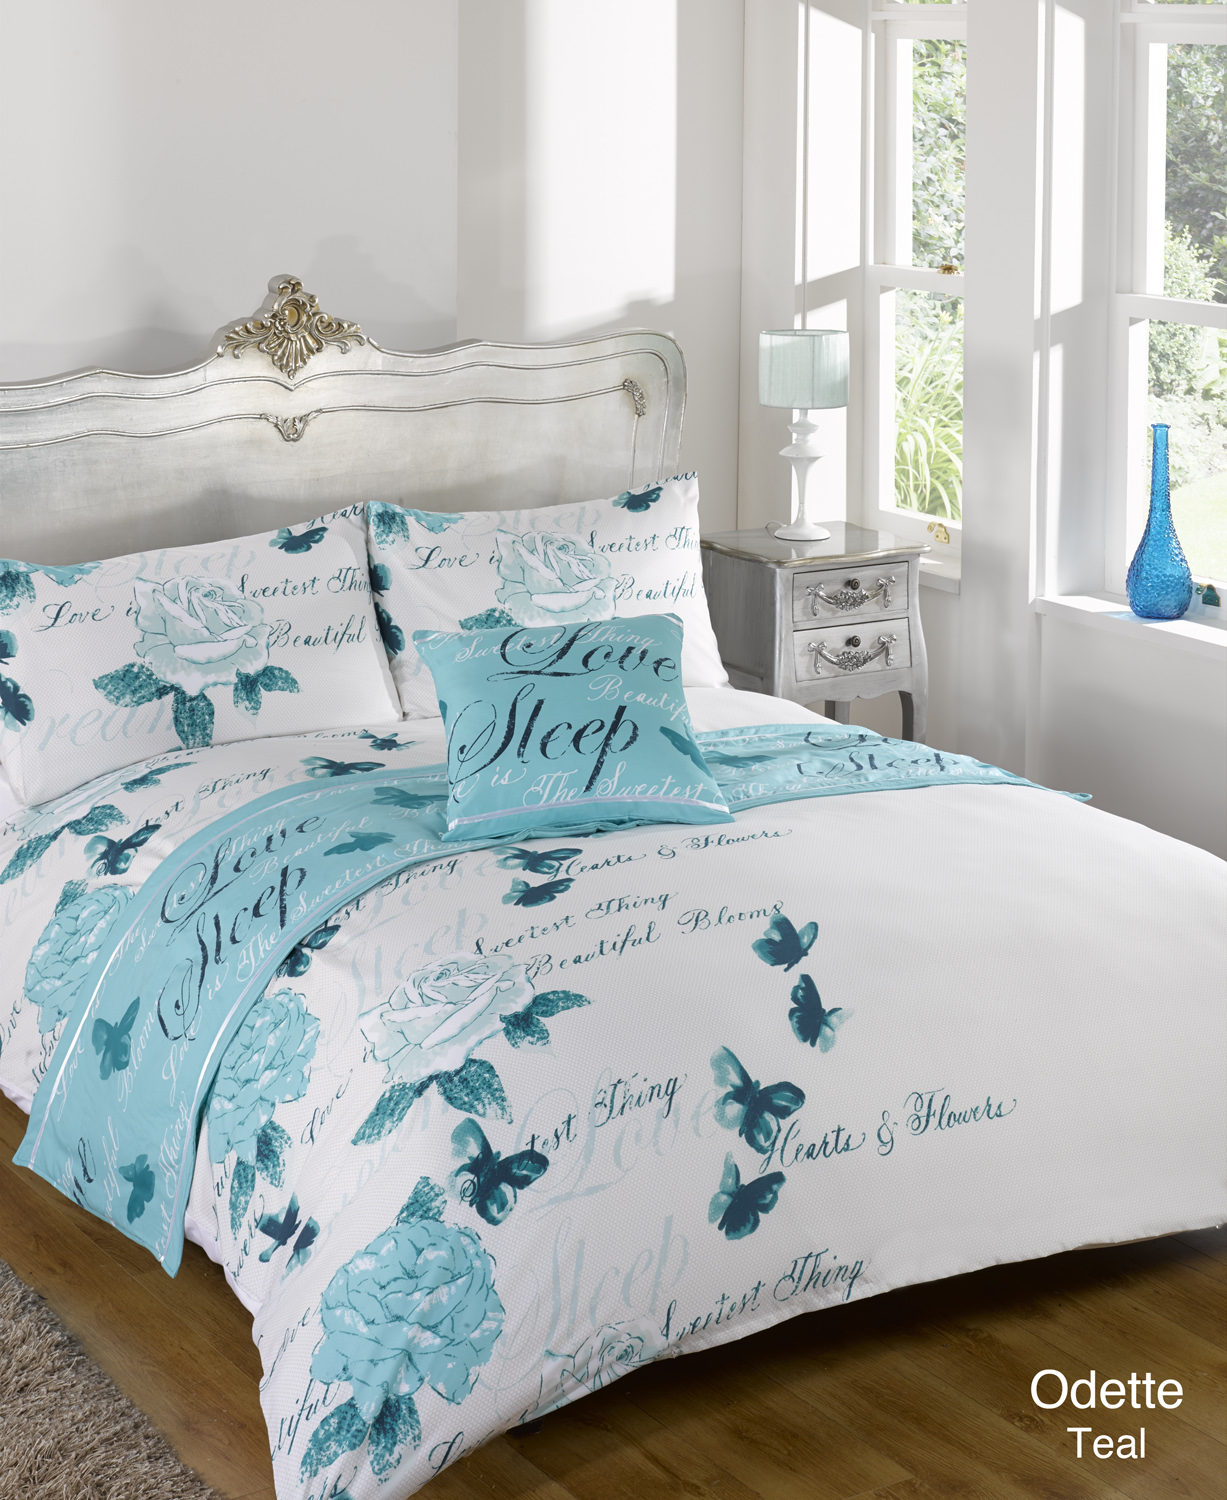 Quilt Covers 92 Products found Spend $ and Save $20 on apparel instore and online Conditions apply Save $20 when you spend $ or more on men's, women's and children's and baby apparel, instore or online at theotherqi.cf